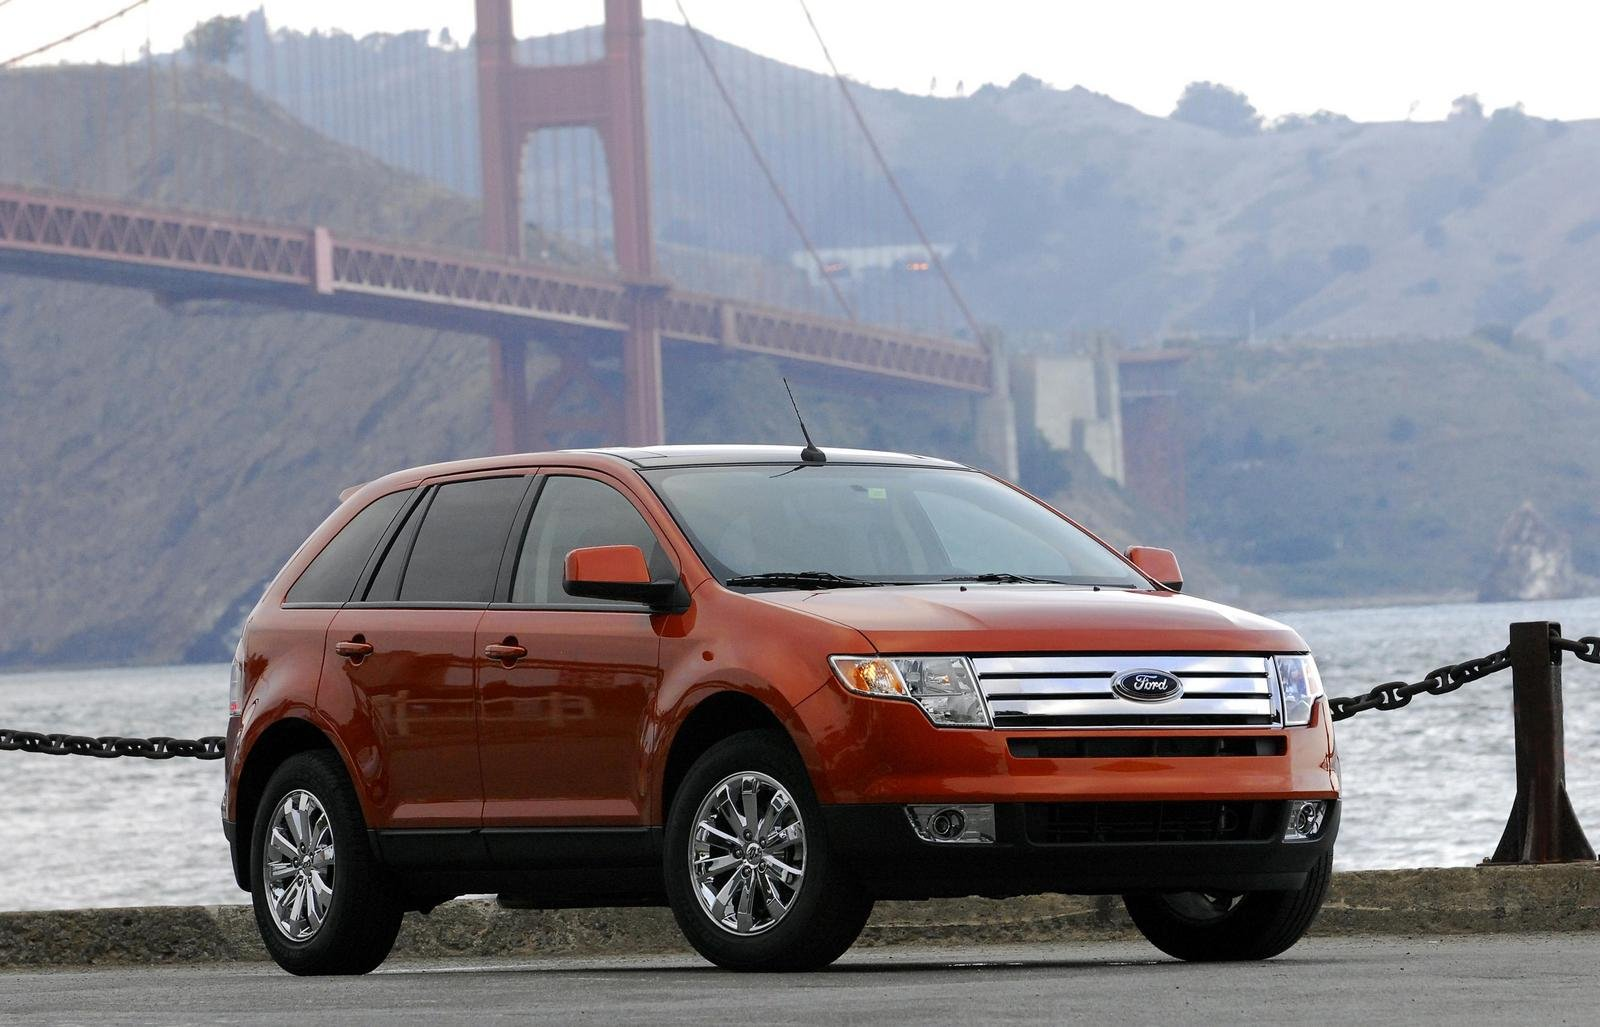 2007 ford edge picture 162012 car review top speed. Black Bedroom Furniture Sets. Home Design Ideas